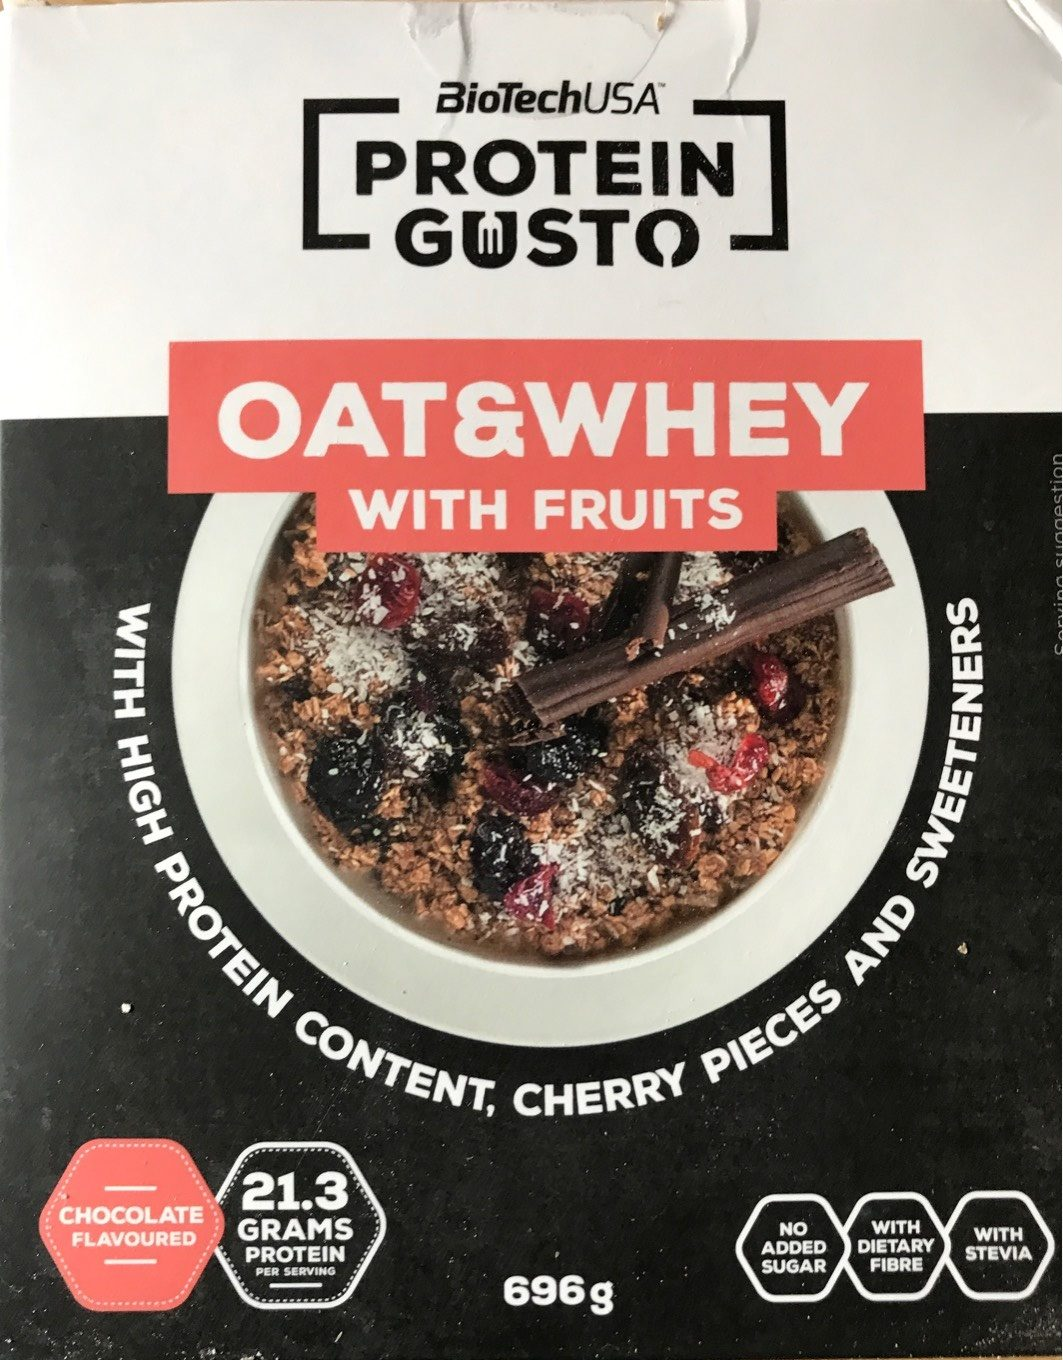 Oat&whey with fruits - Product